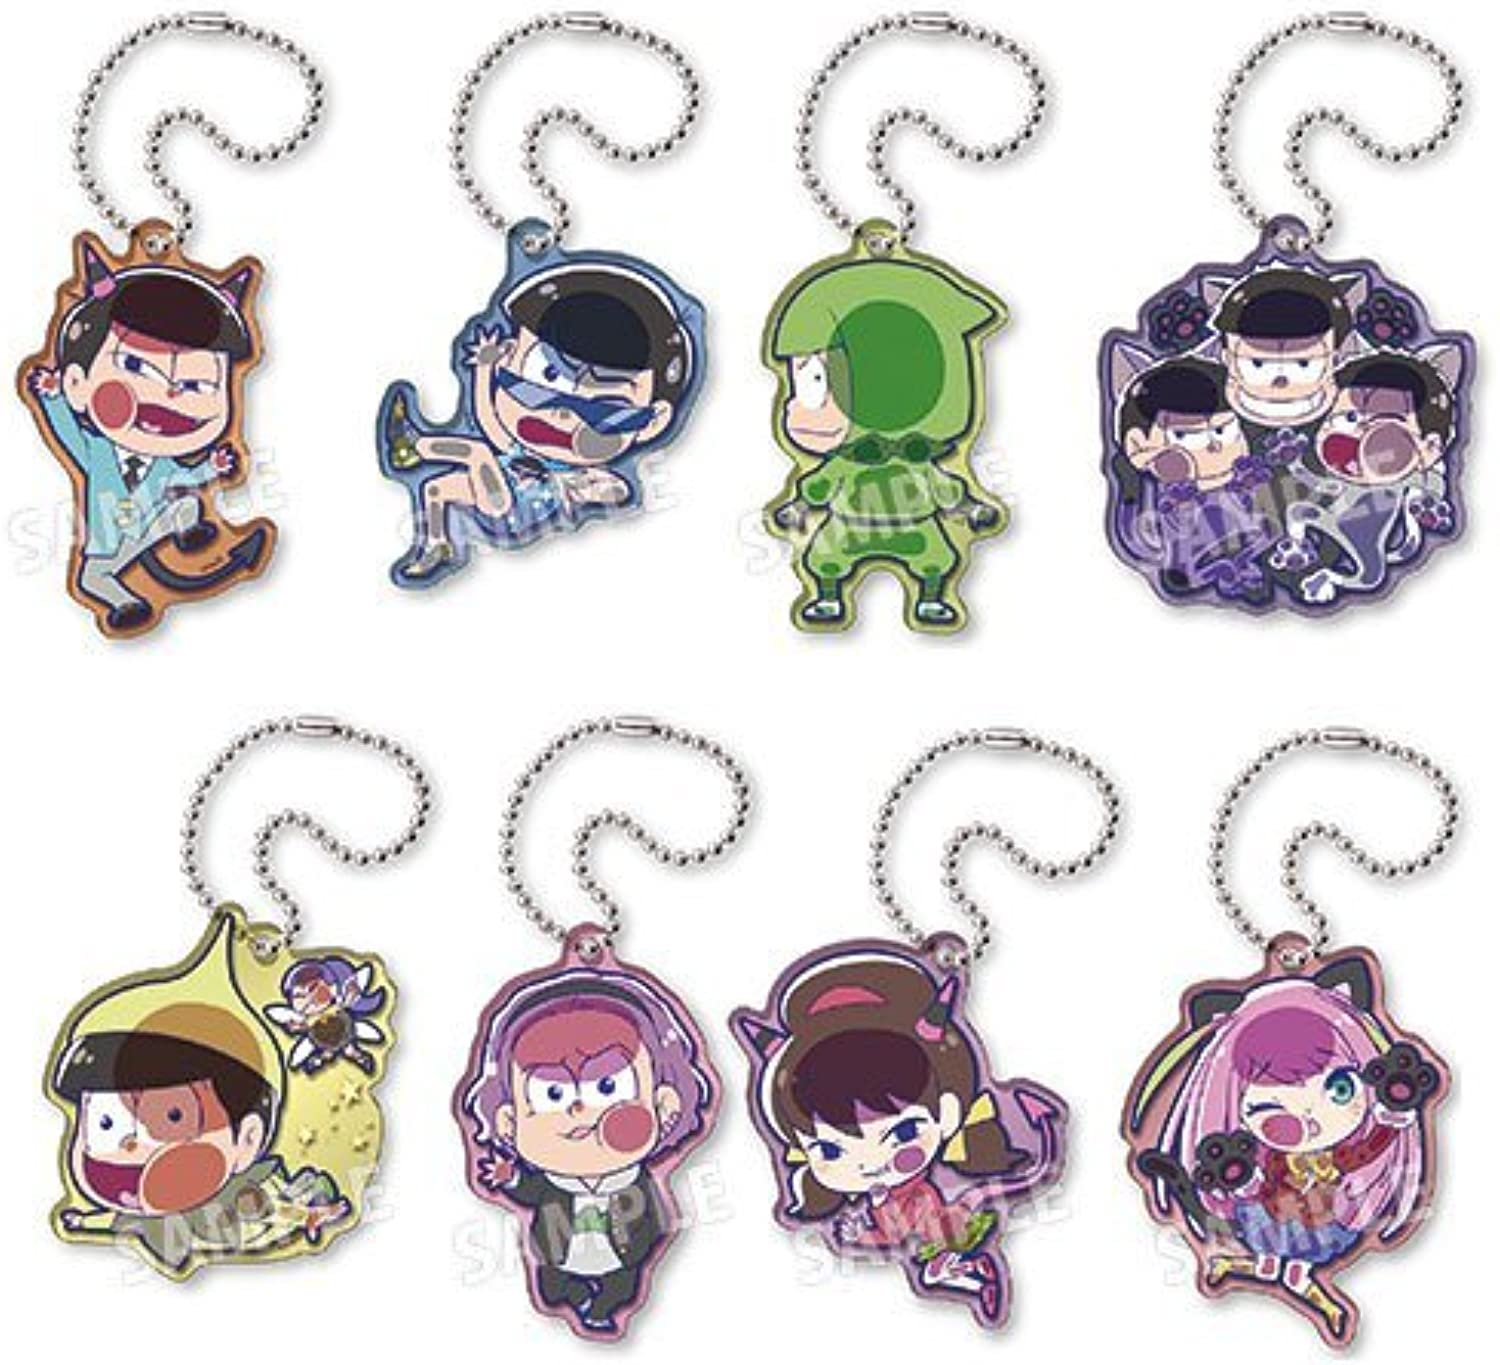 Pita  In the Information Osomatsu's Variety Pack acrylic key chain 9 pieces BOX